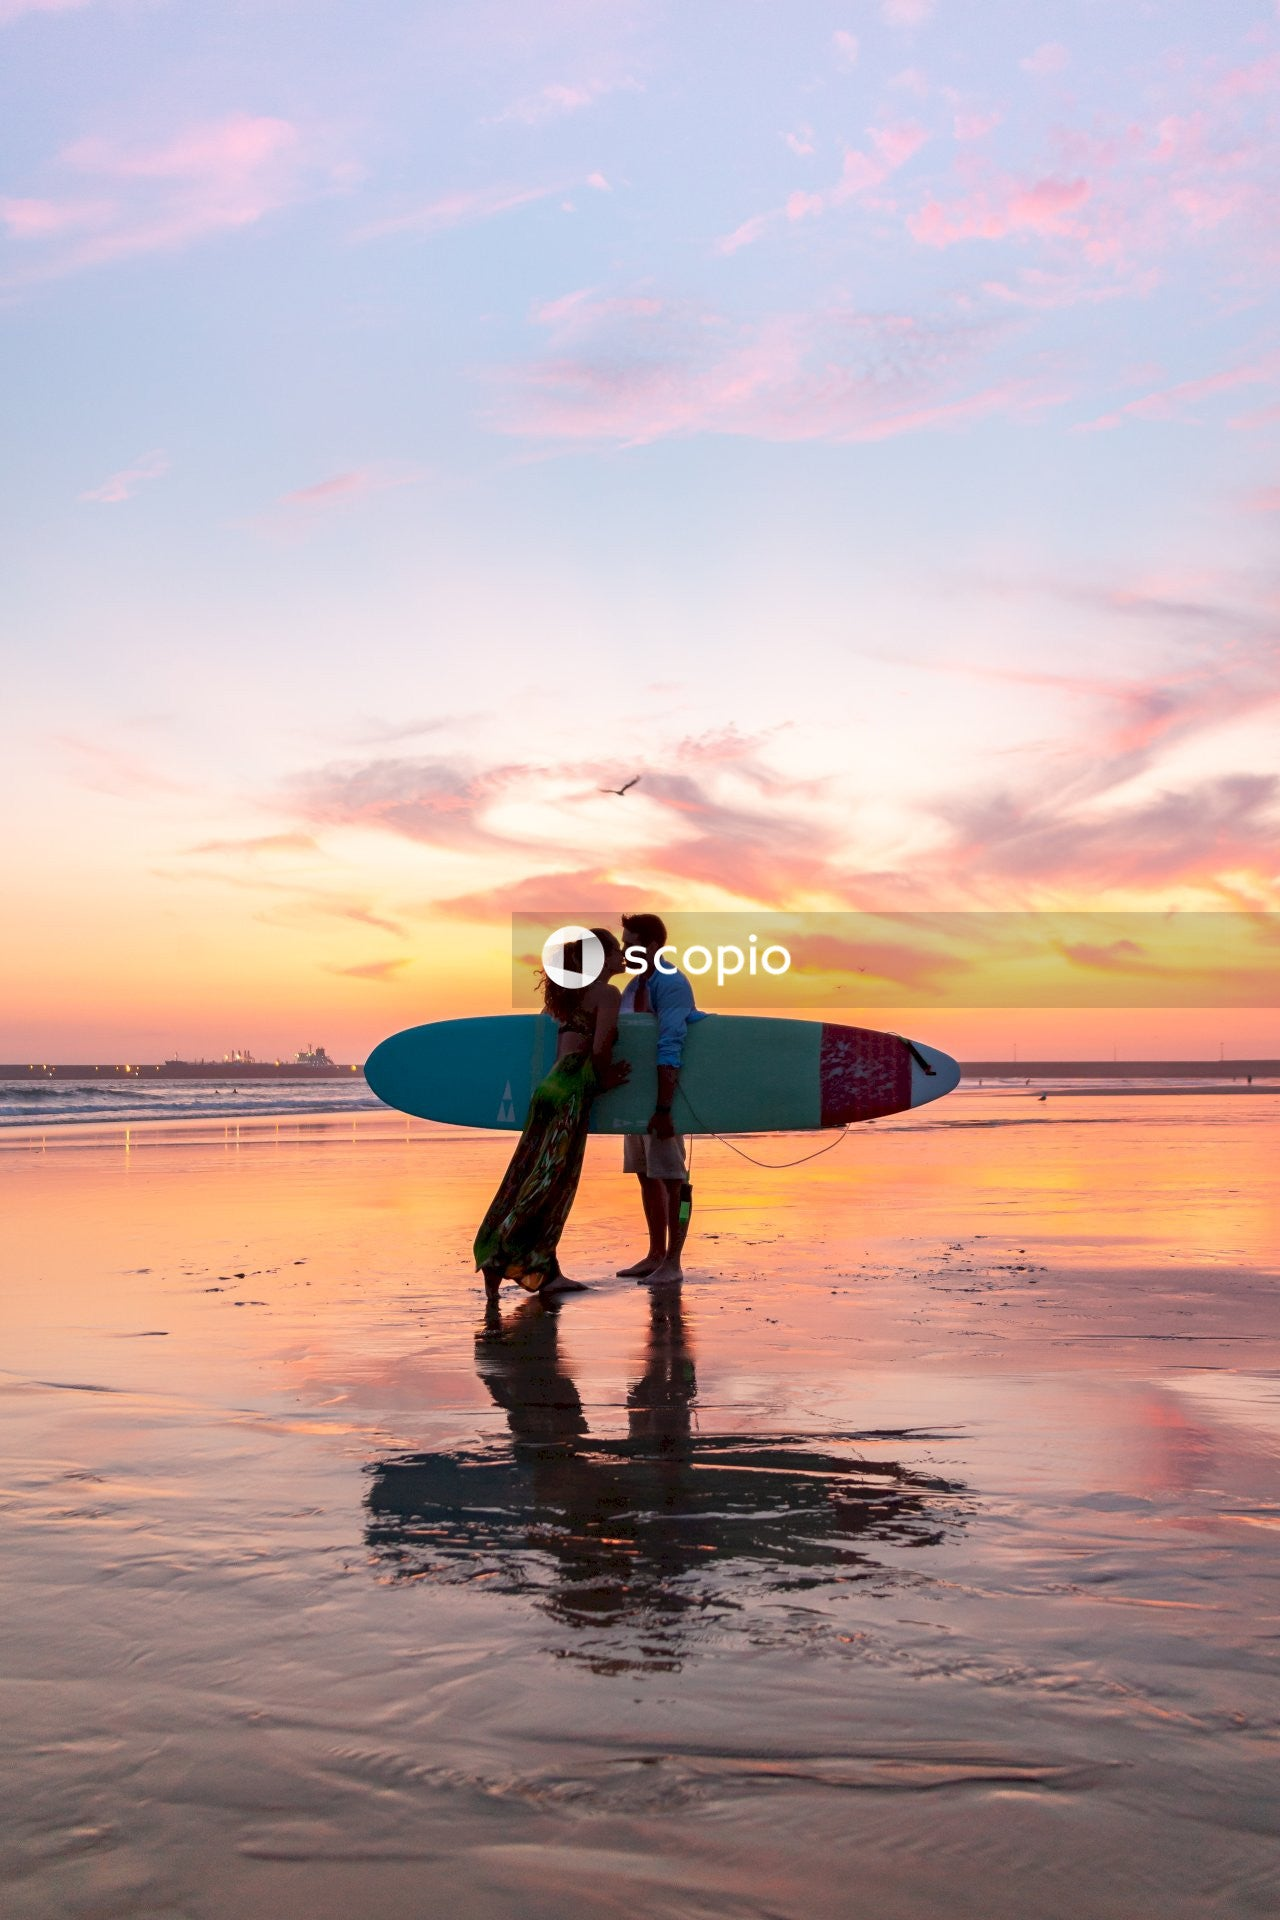 Man in black wet suit holding surfboard walking on beach during sunset